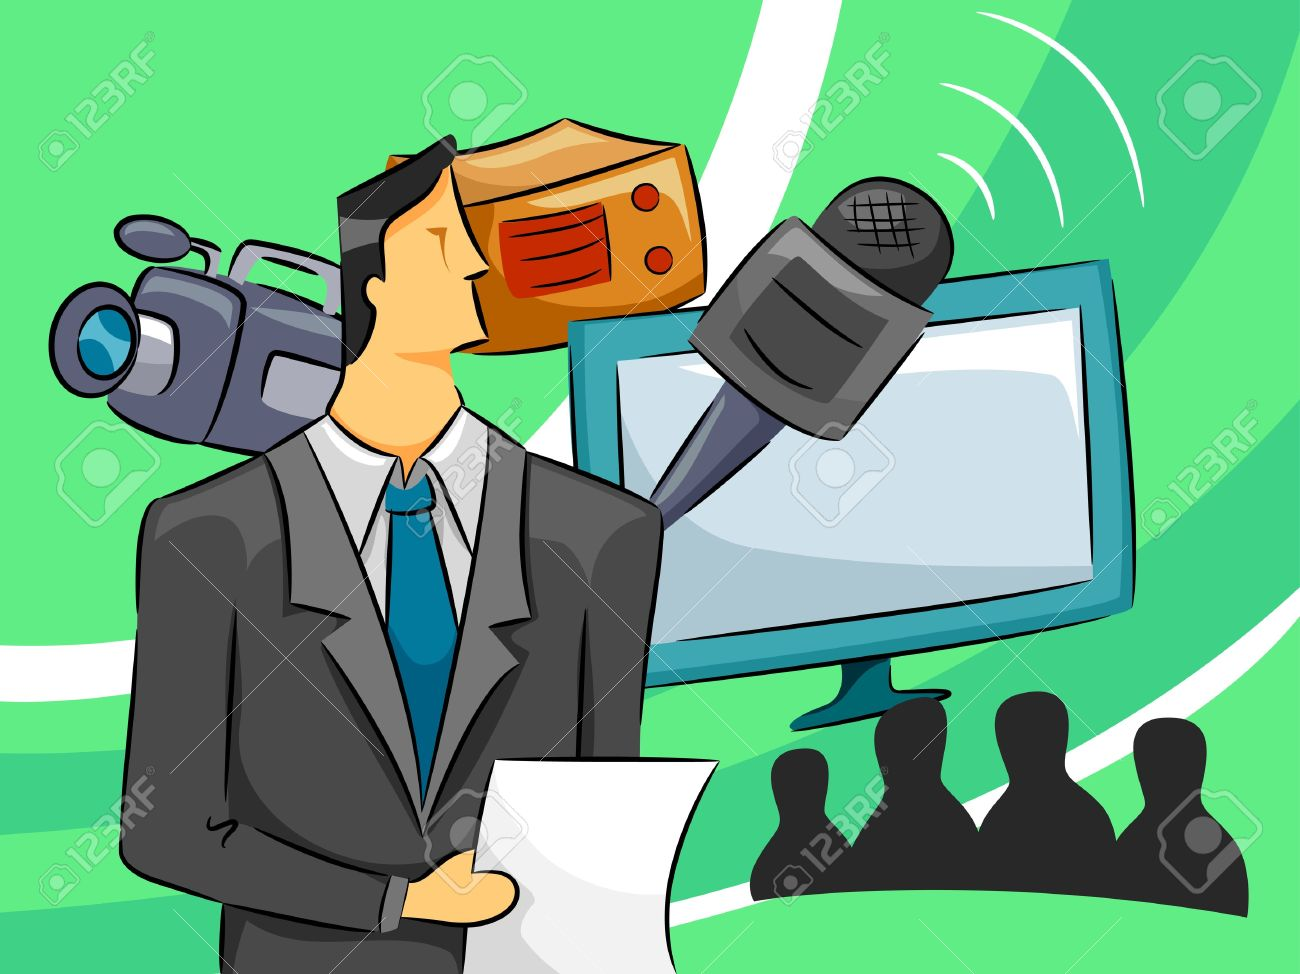 Tv broadcasting clipart.